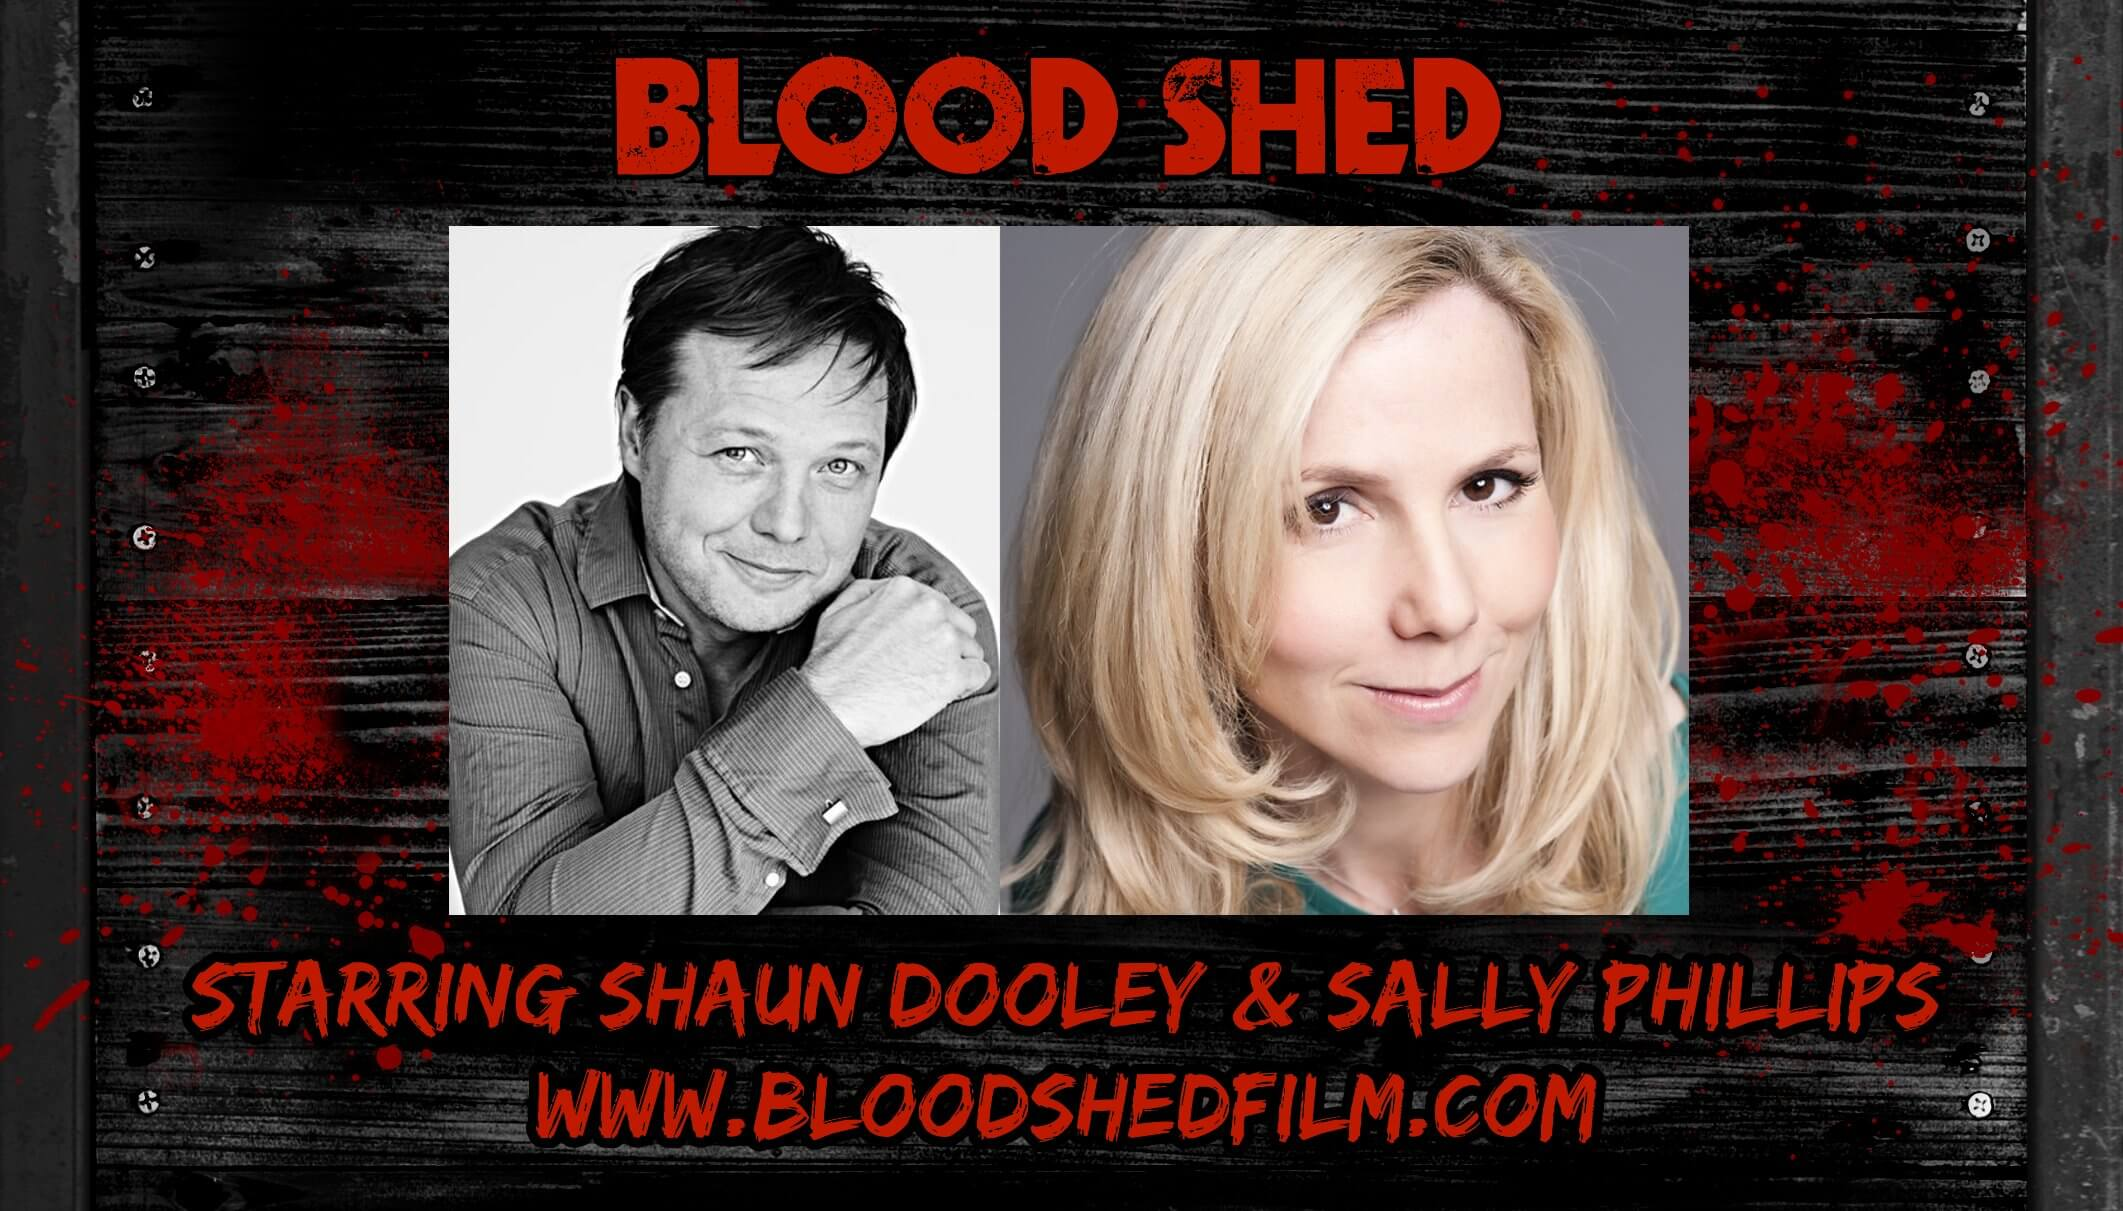 blood shed 1 - Doctor Who Writer James Moran Enters the Blood Shed; Sally Phillips and Shaun Dooley to Star